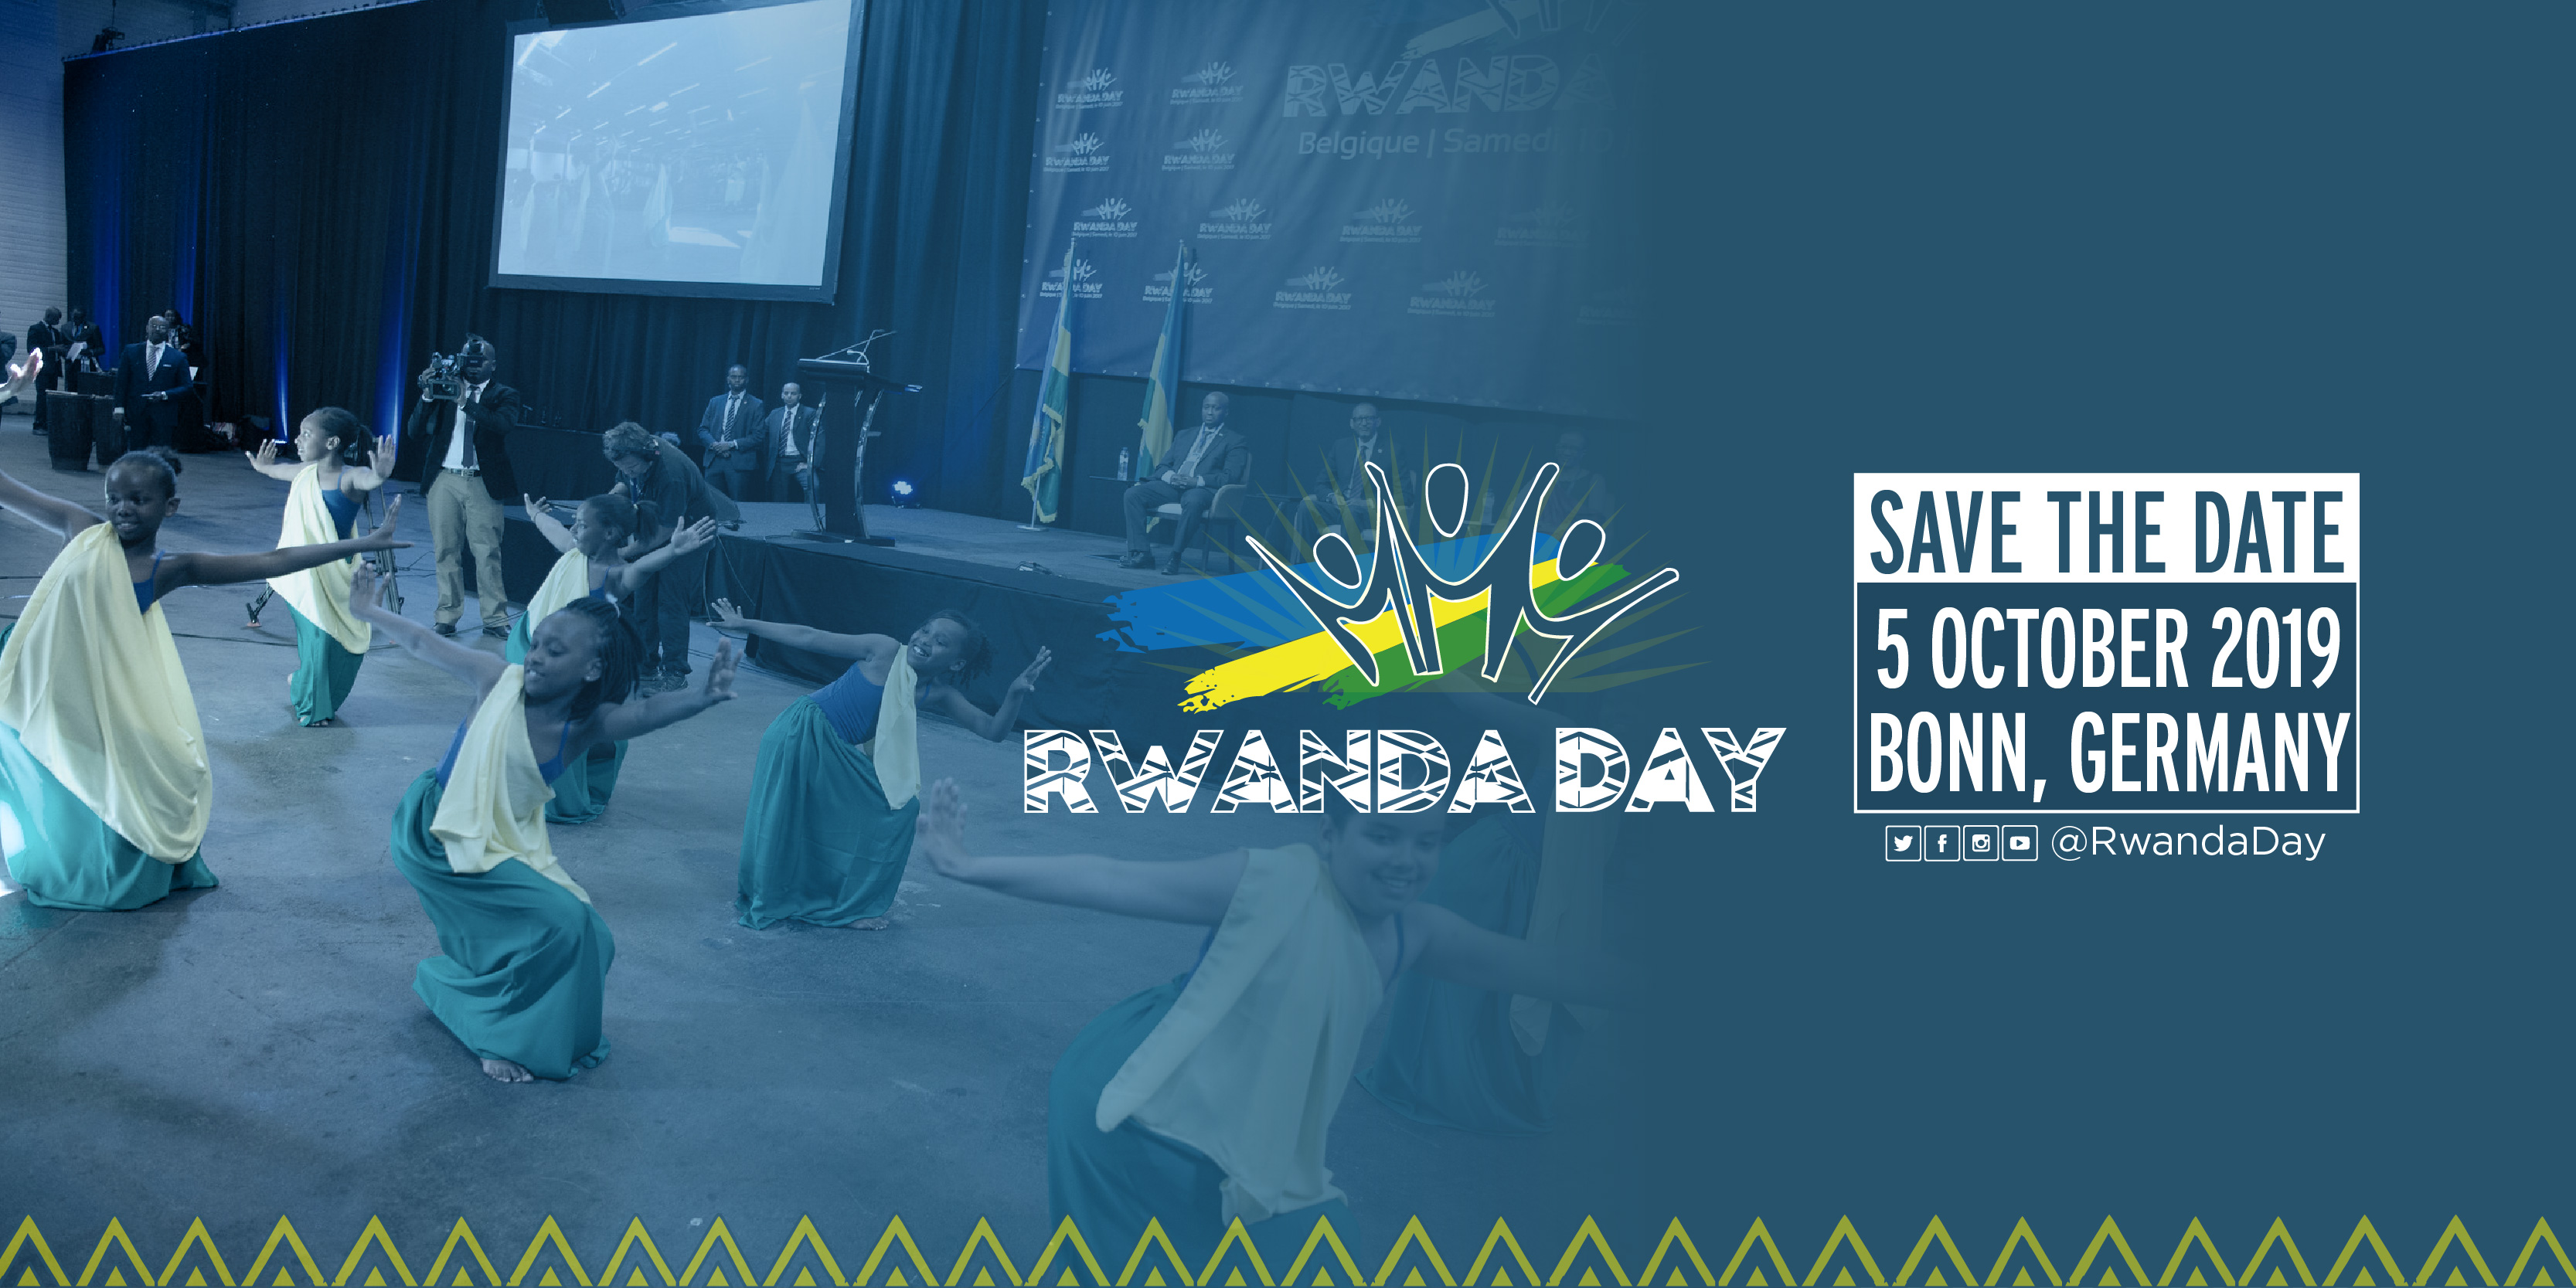 Rwandaday postponed